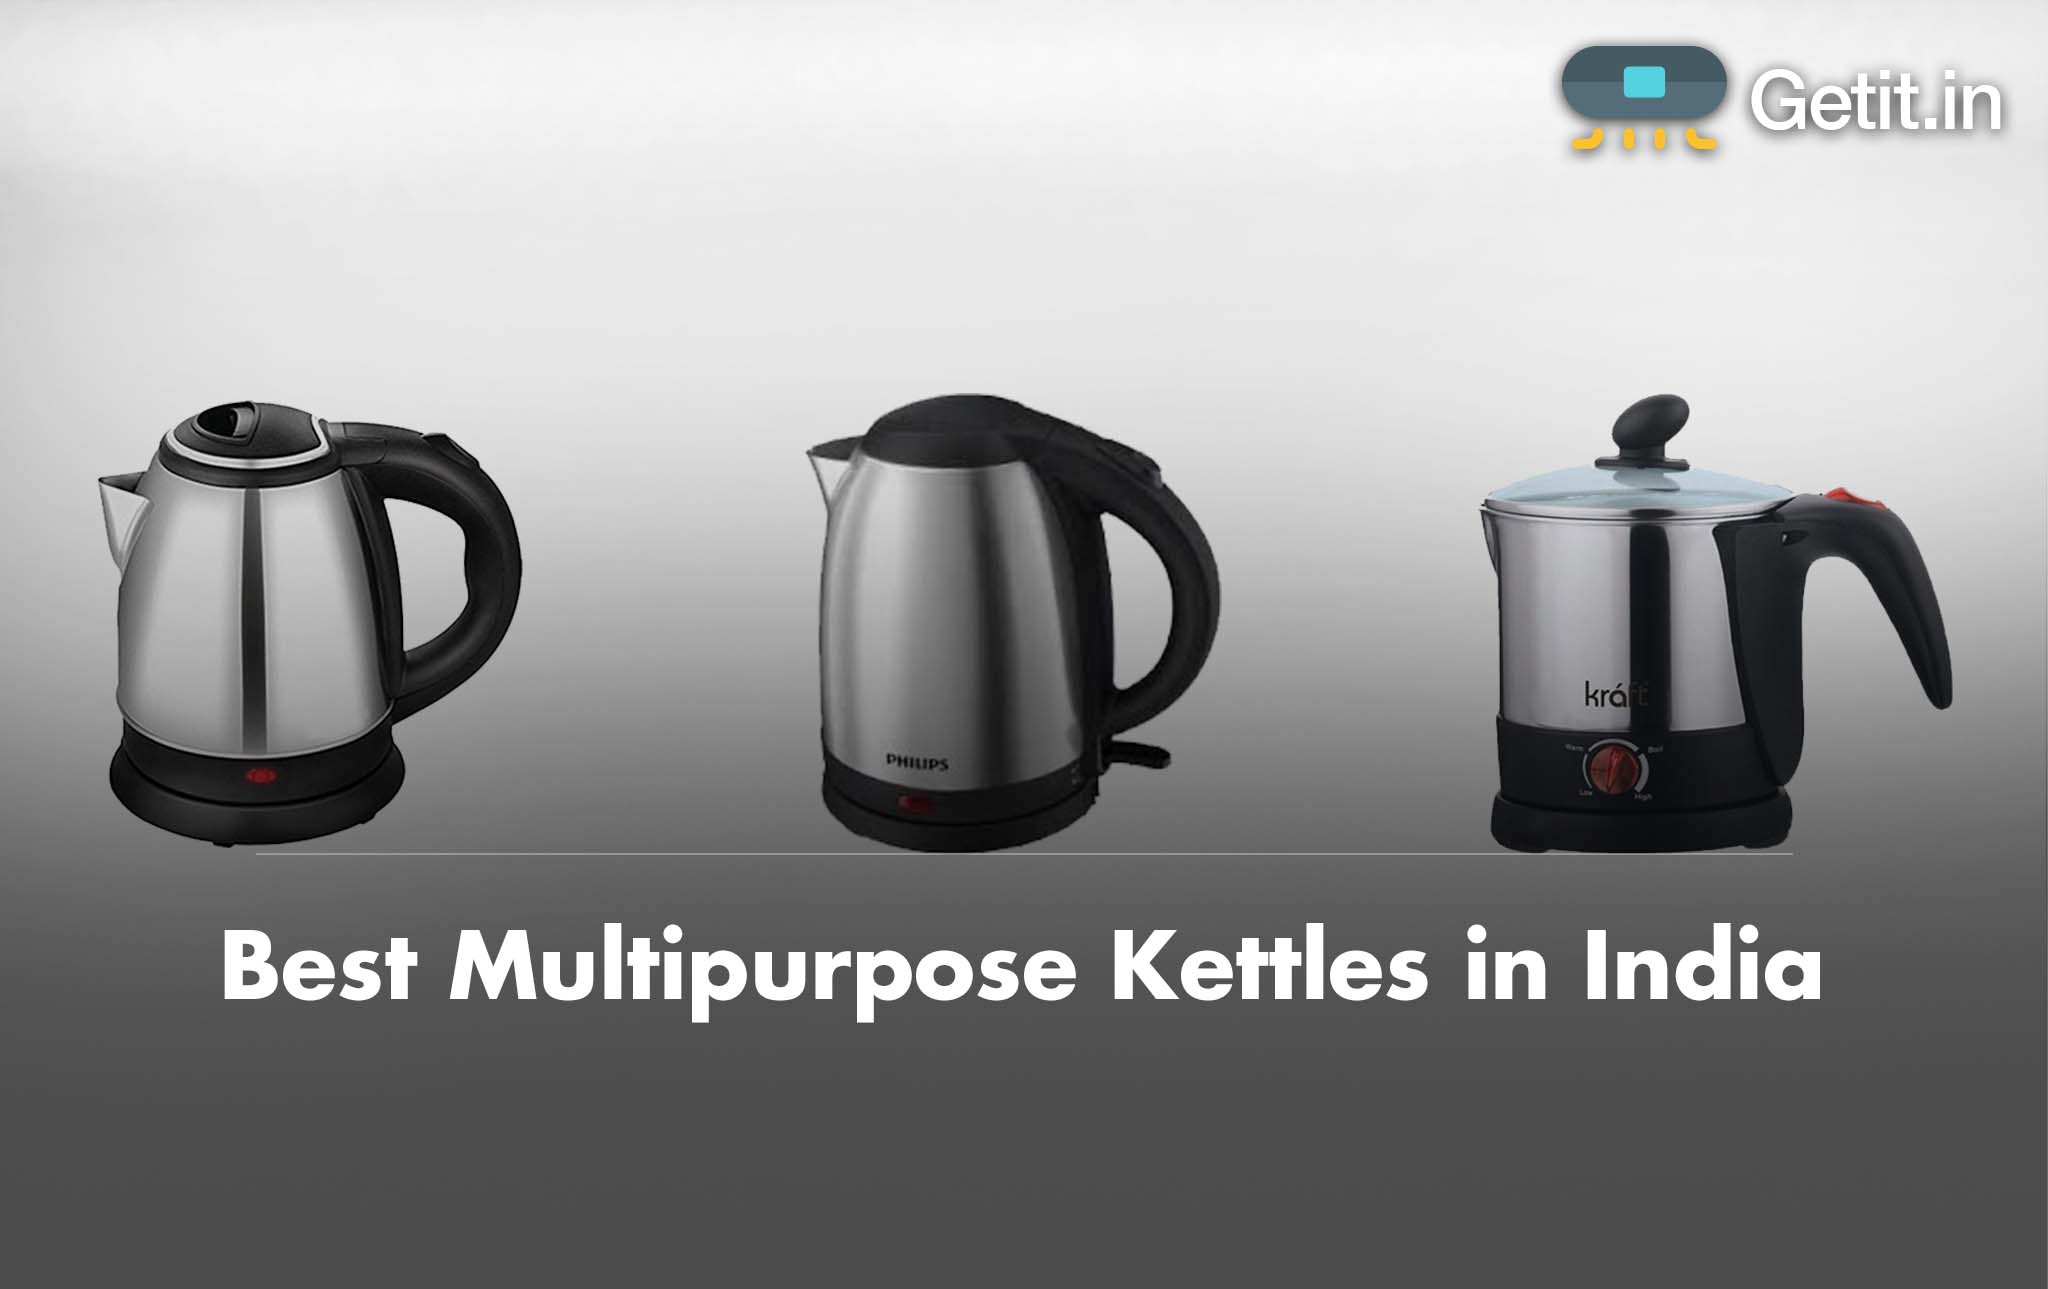 Best Multipurpose Kettles in India